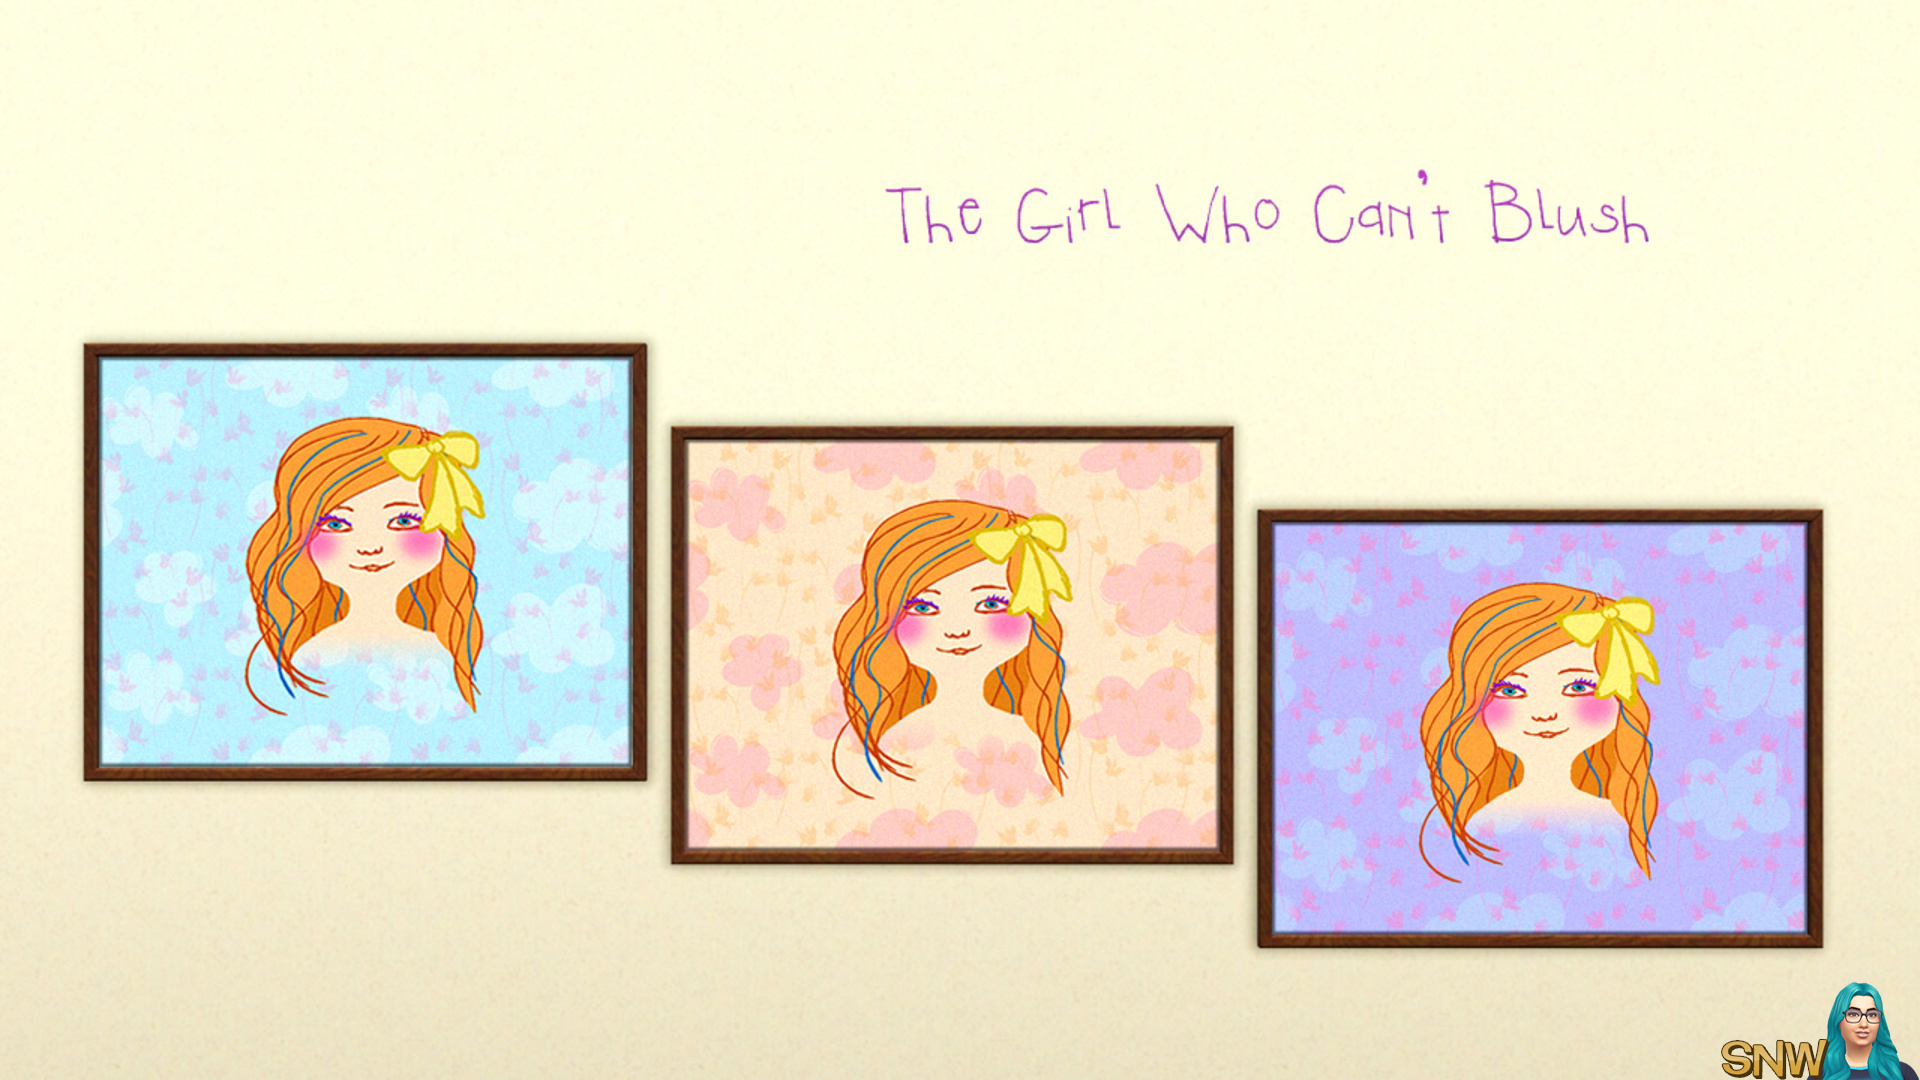 The Girl Who Can't Blush painting